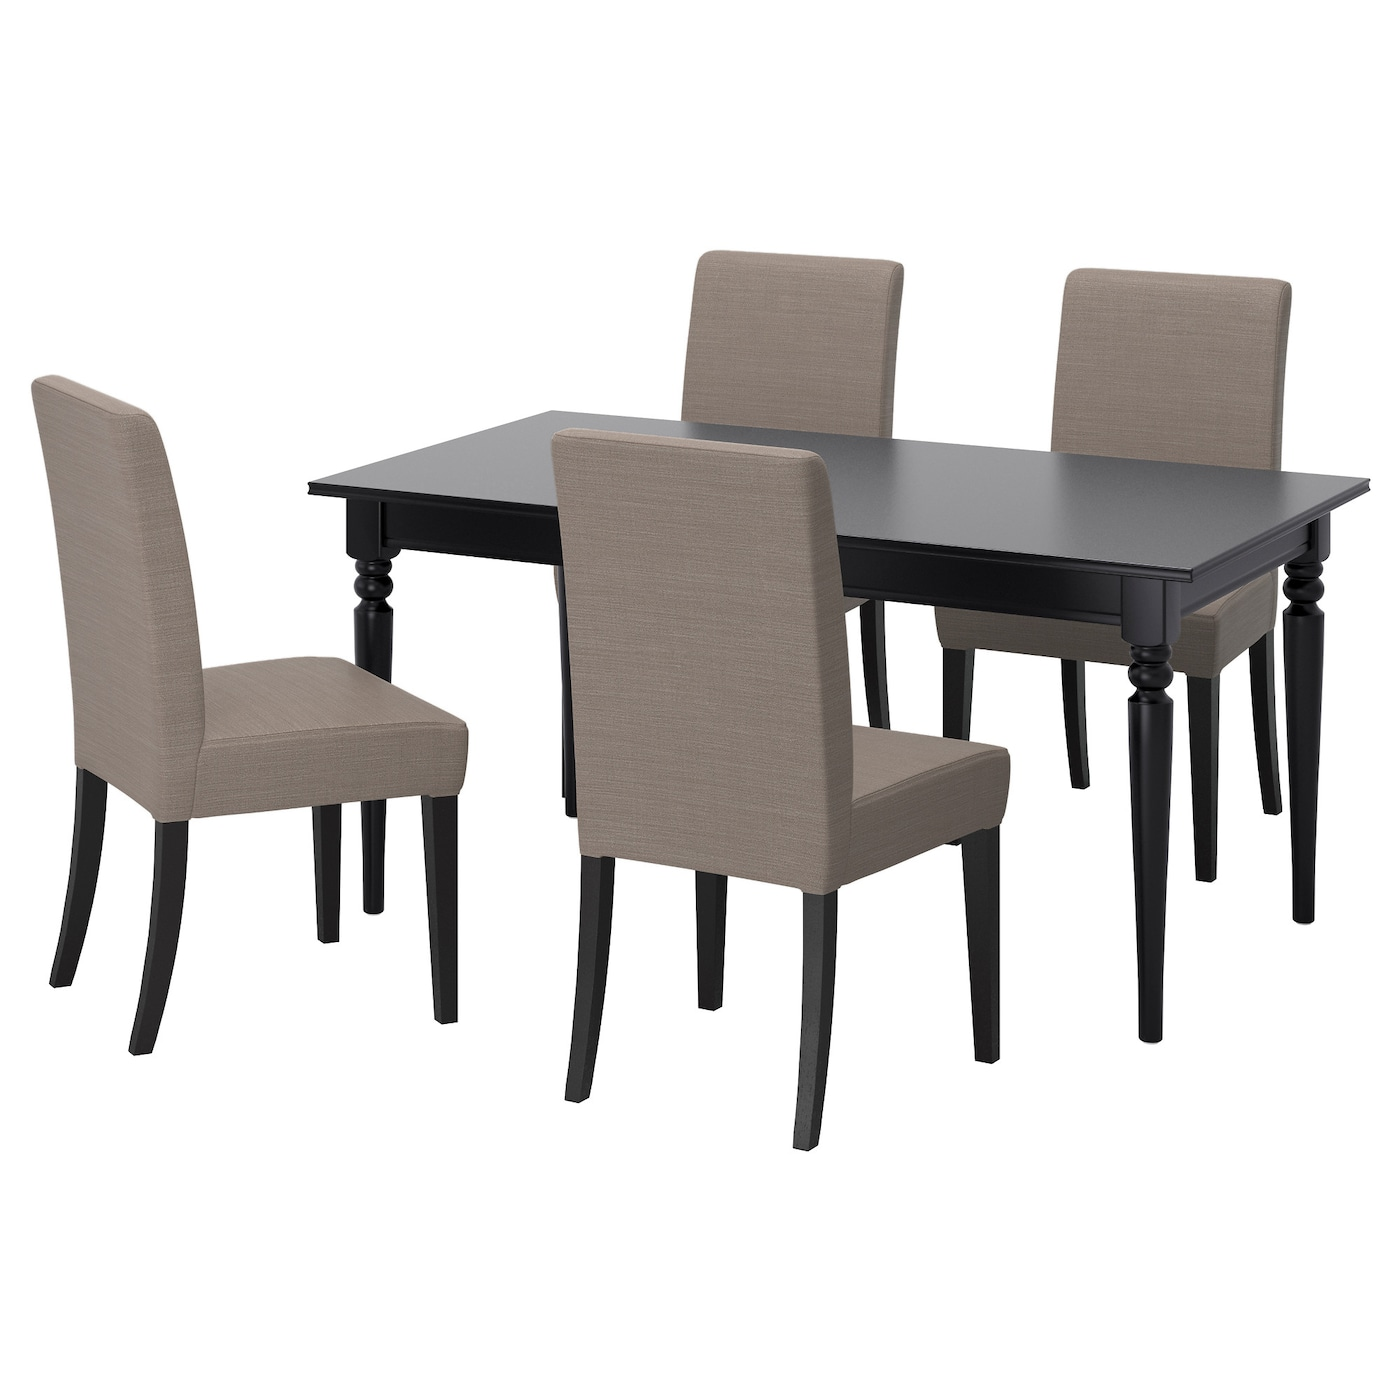 INGATORP/HENRIKSDAL Table And 4 Chairs Black/nolhaga Grey